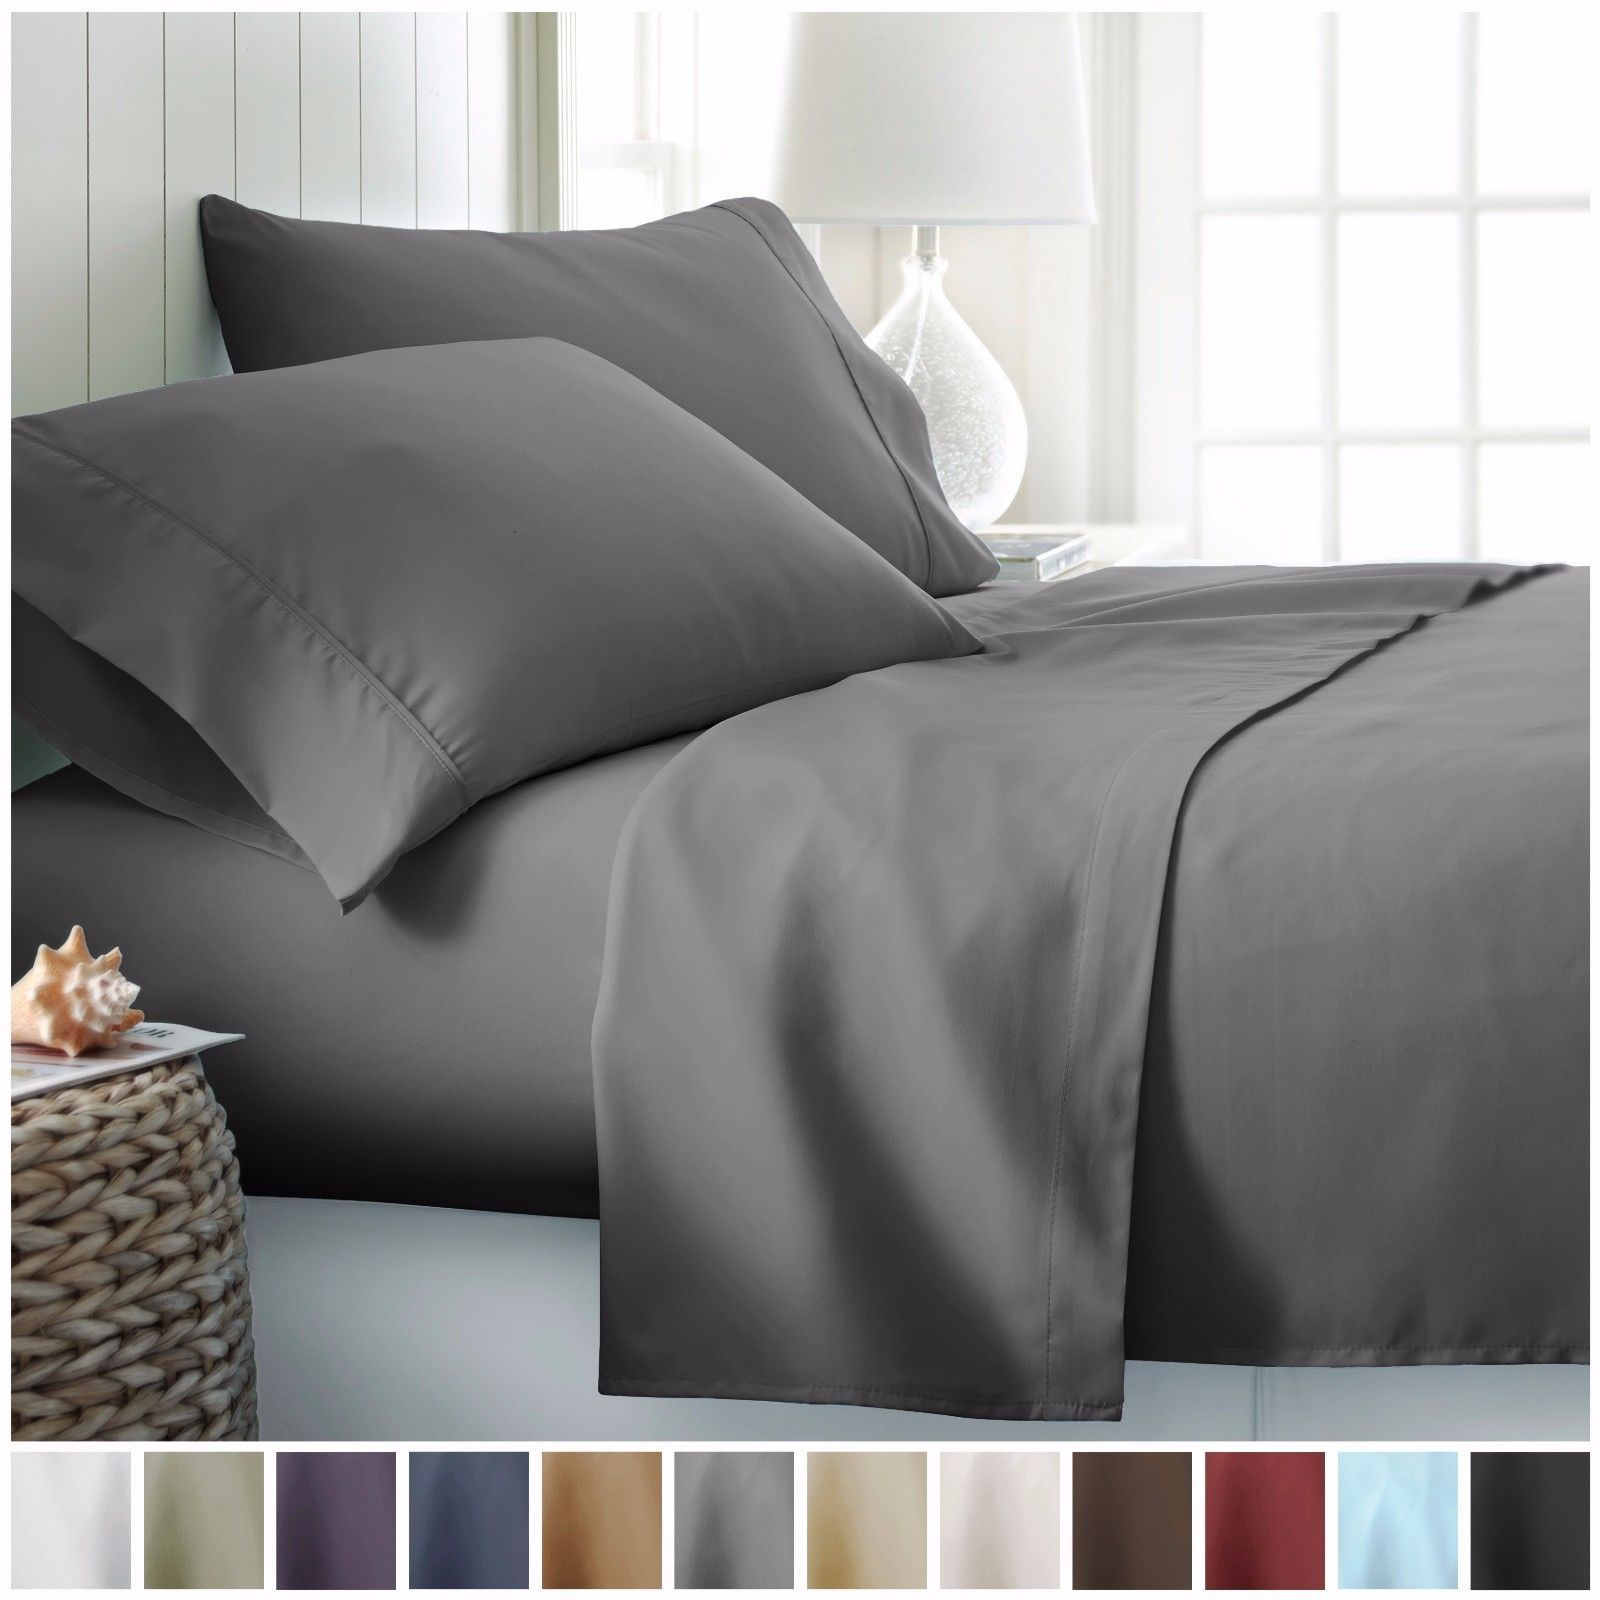 Egyptian Comfort 1800 Count Hotel Quality 4 Piece Deep Pocket Bed